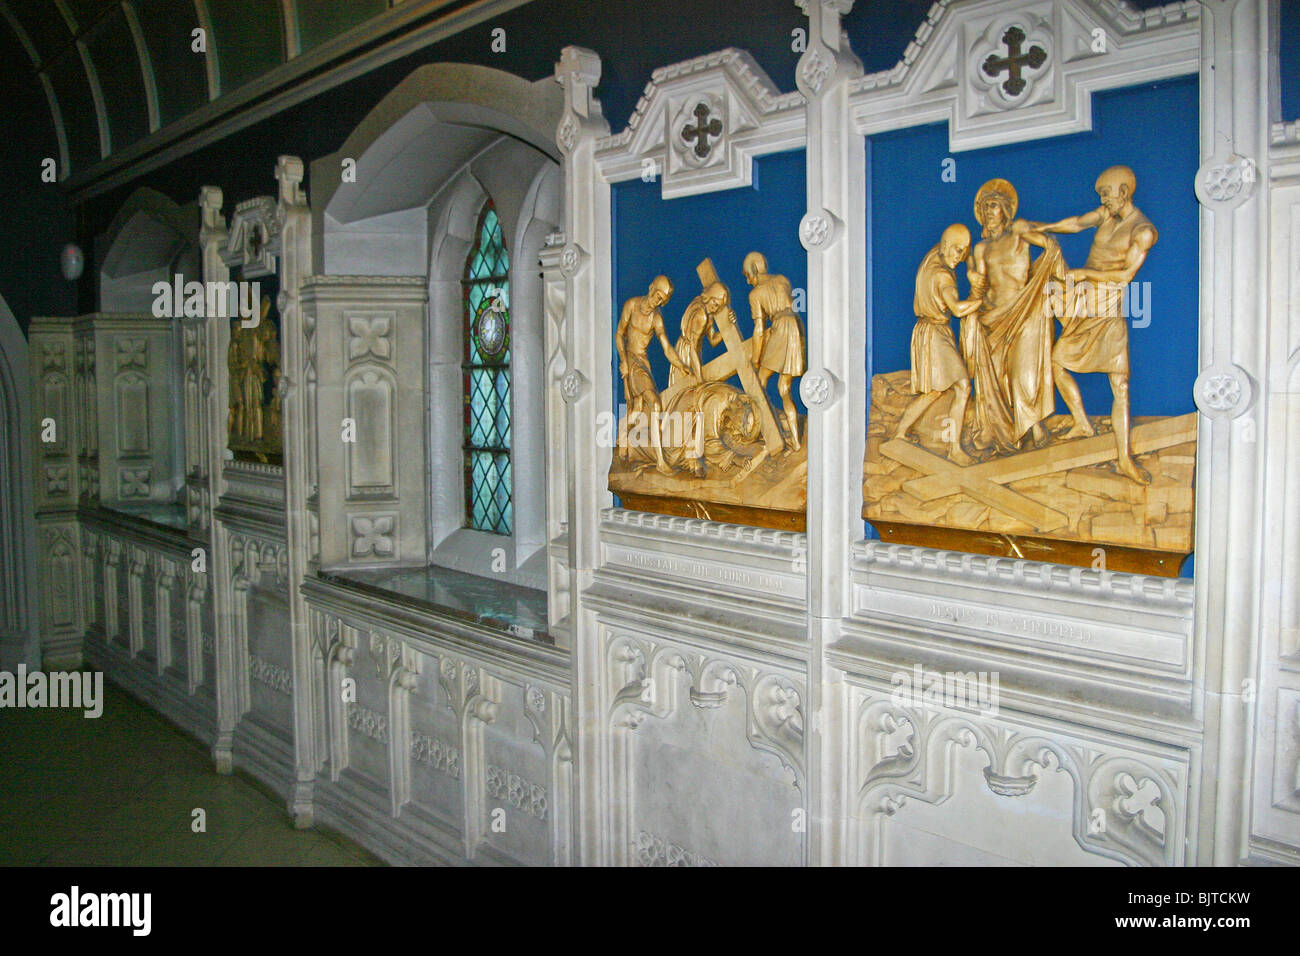 Panels at Ushaw College St Cuthbert's Roman Catholic seminary Durham religious painting wall frieze - Stock Image